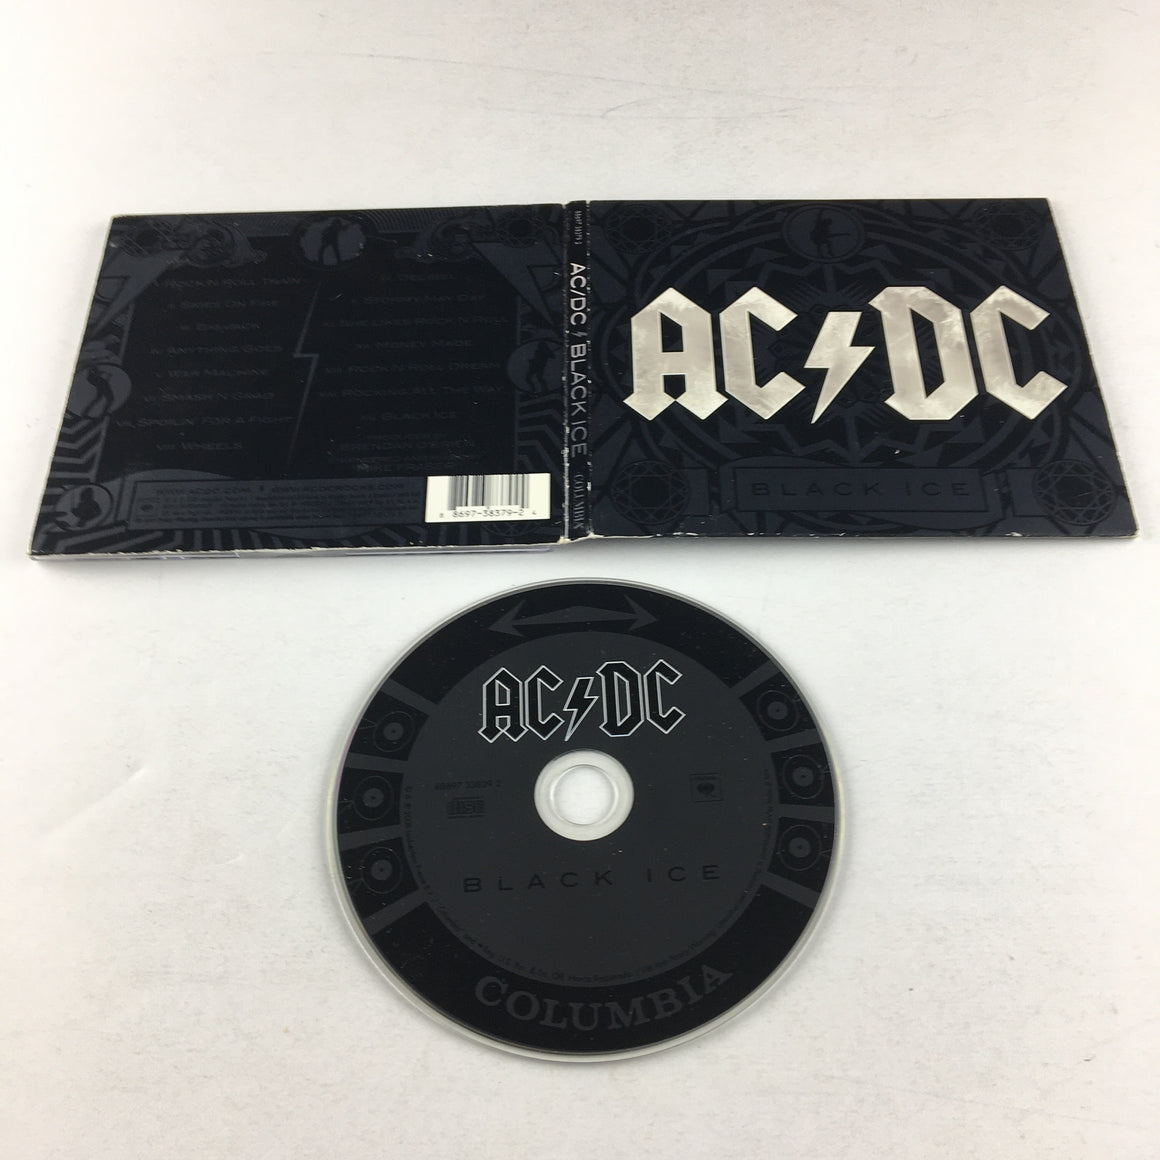 AC/DC Black Ice Used CD VG+ 88697383792 Walmart White Lettering